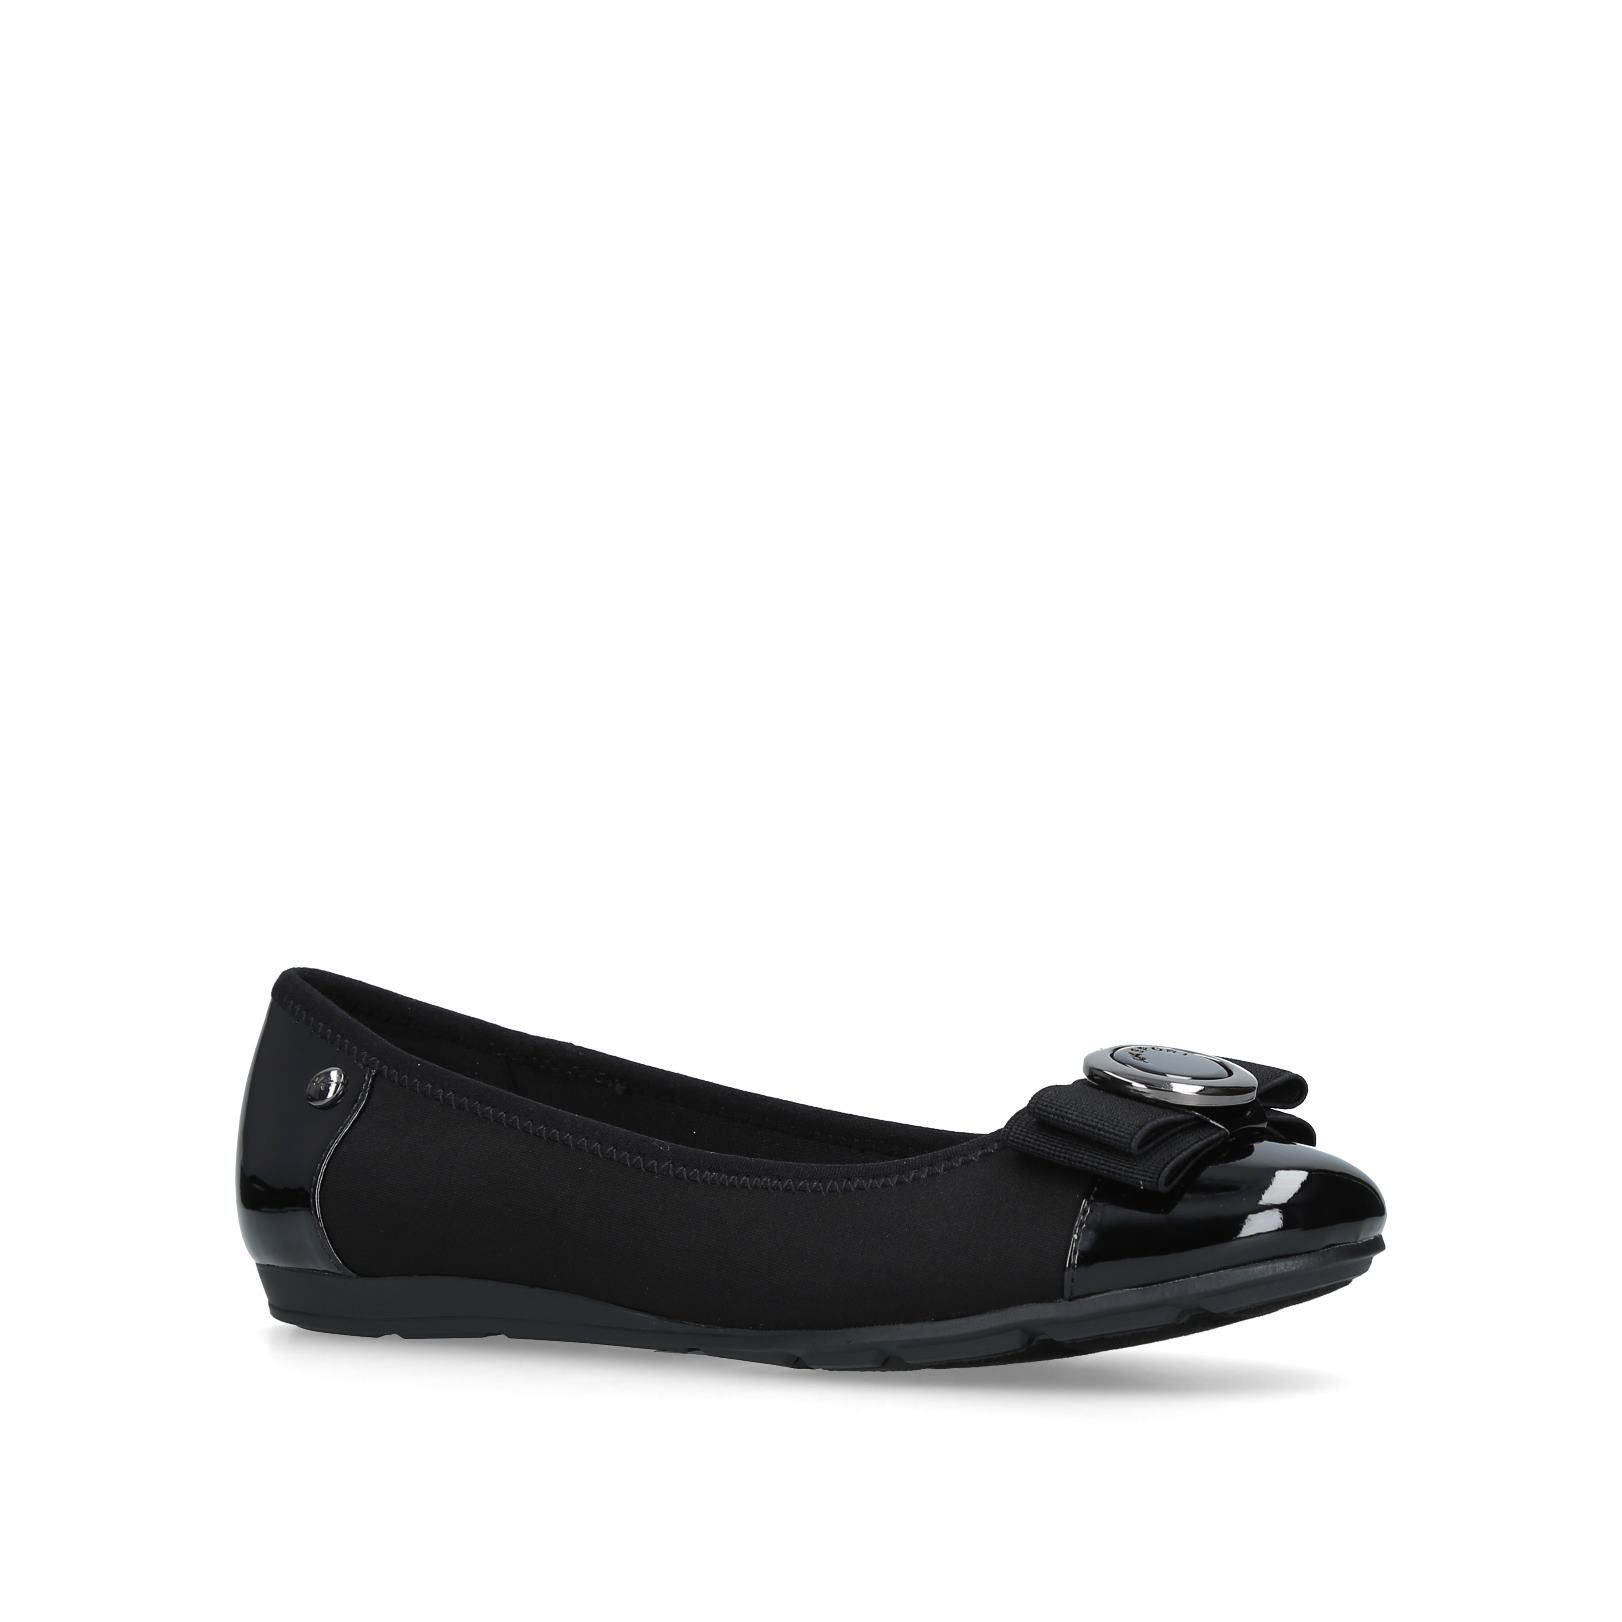 Anne Klein Amuzement Ballerina Pumps, Black